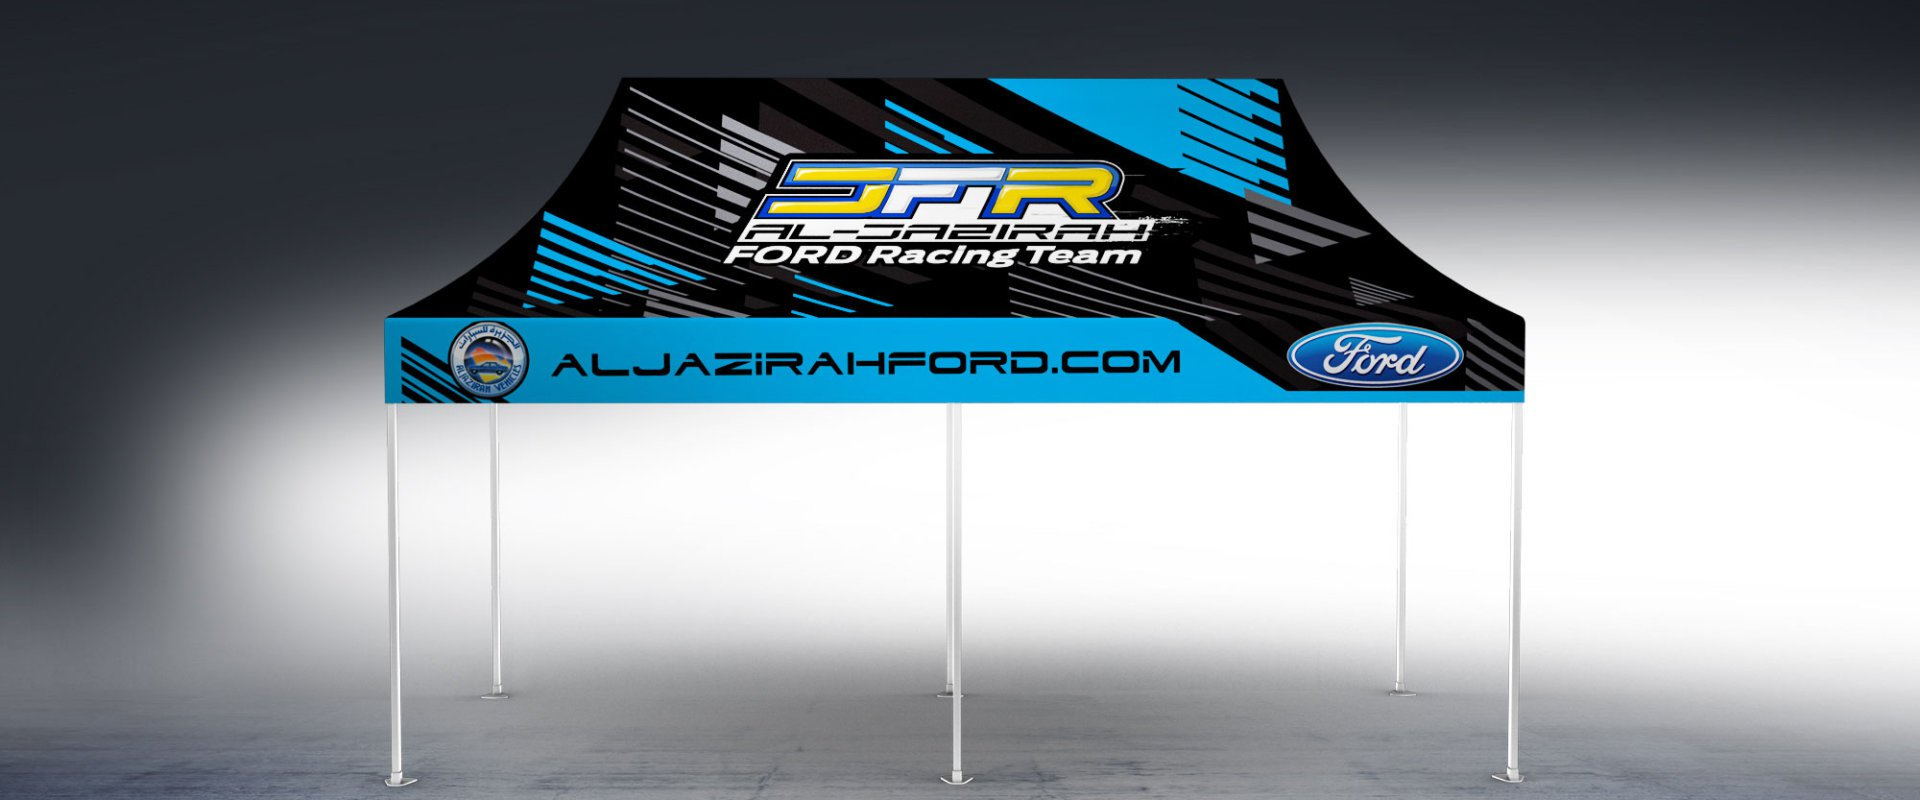 JFR Al Jazirah Ford Racing Team #3